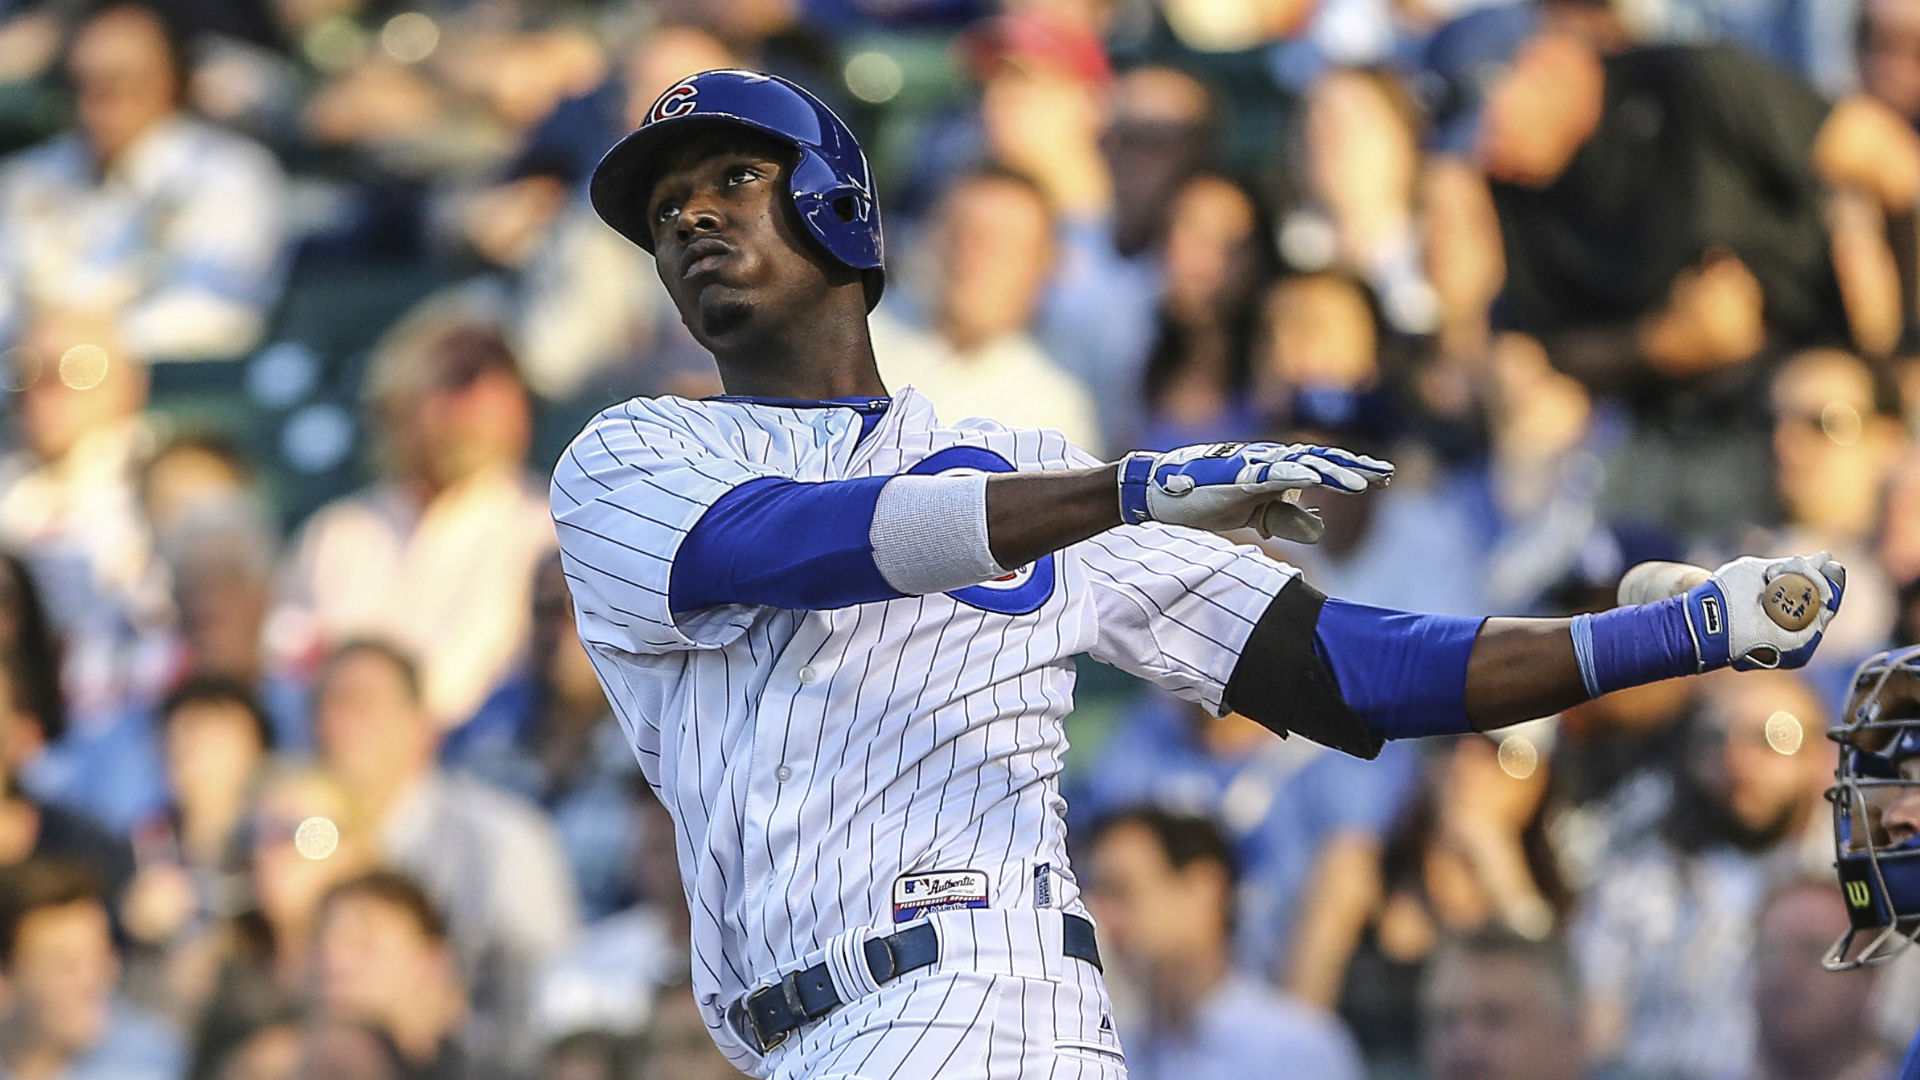 Fantasy baseball sleepers: Junior Lake a young Cub to watch before top prospects arrive